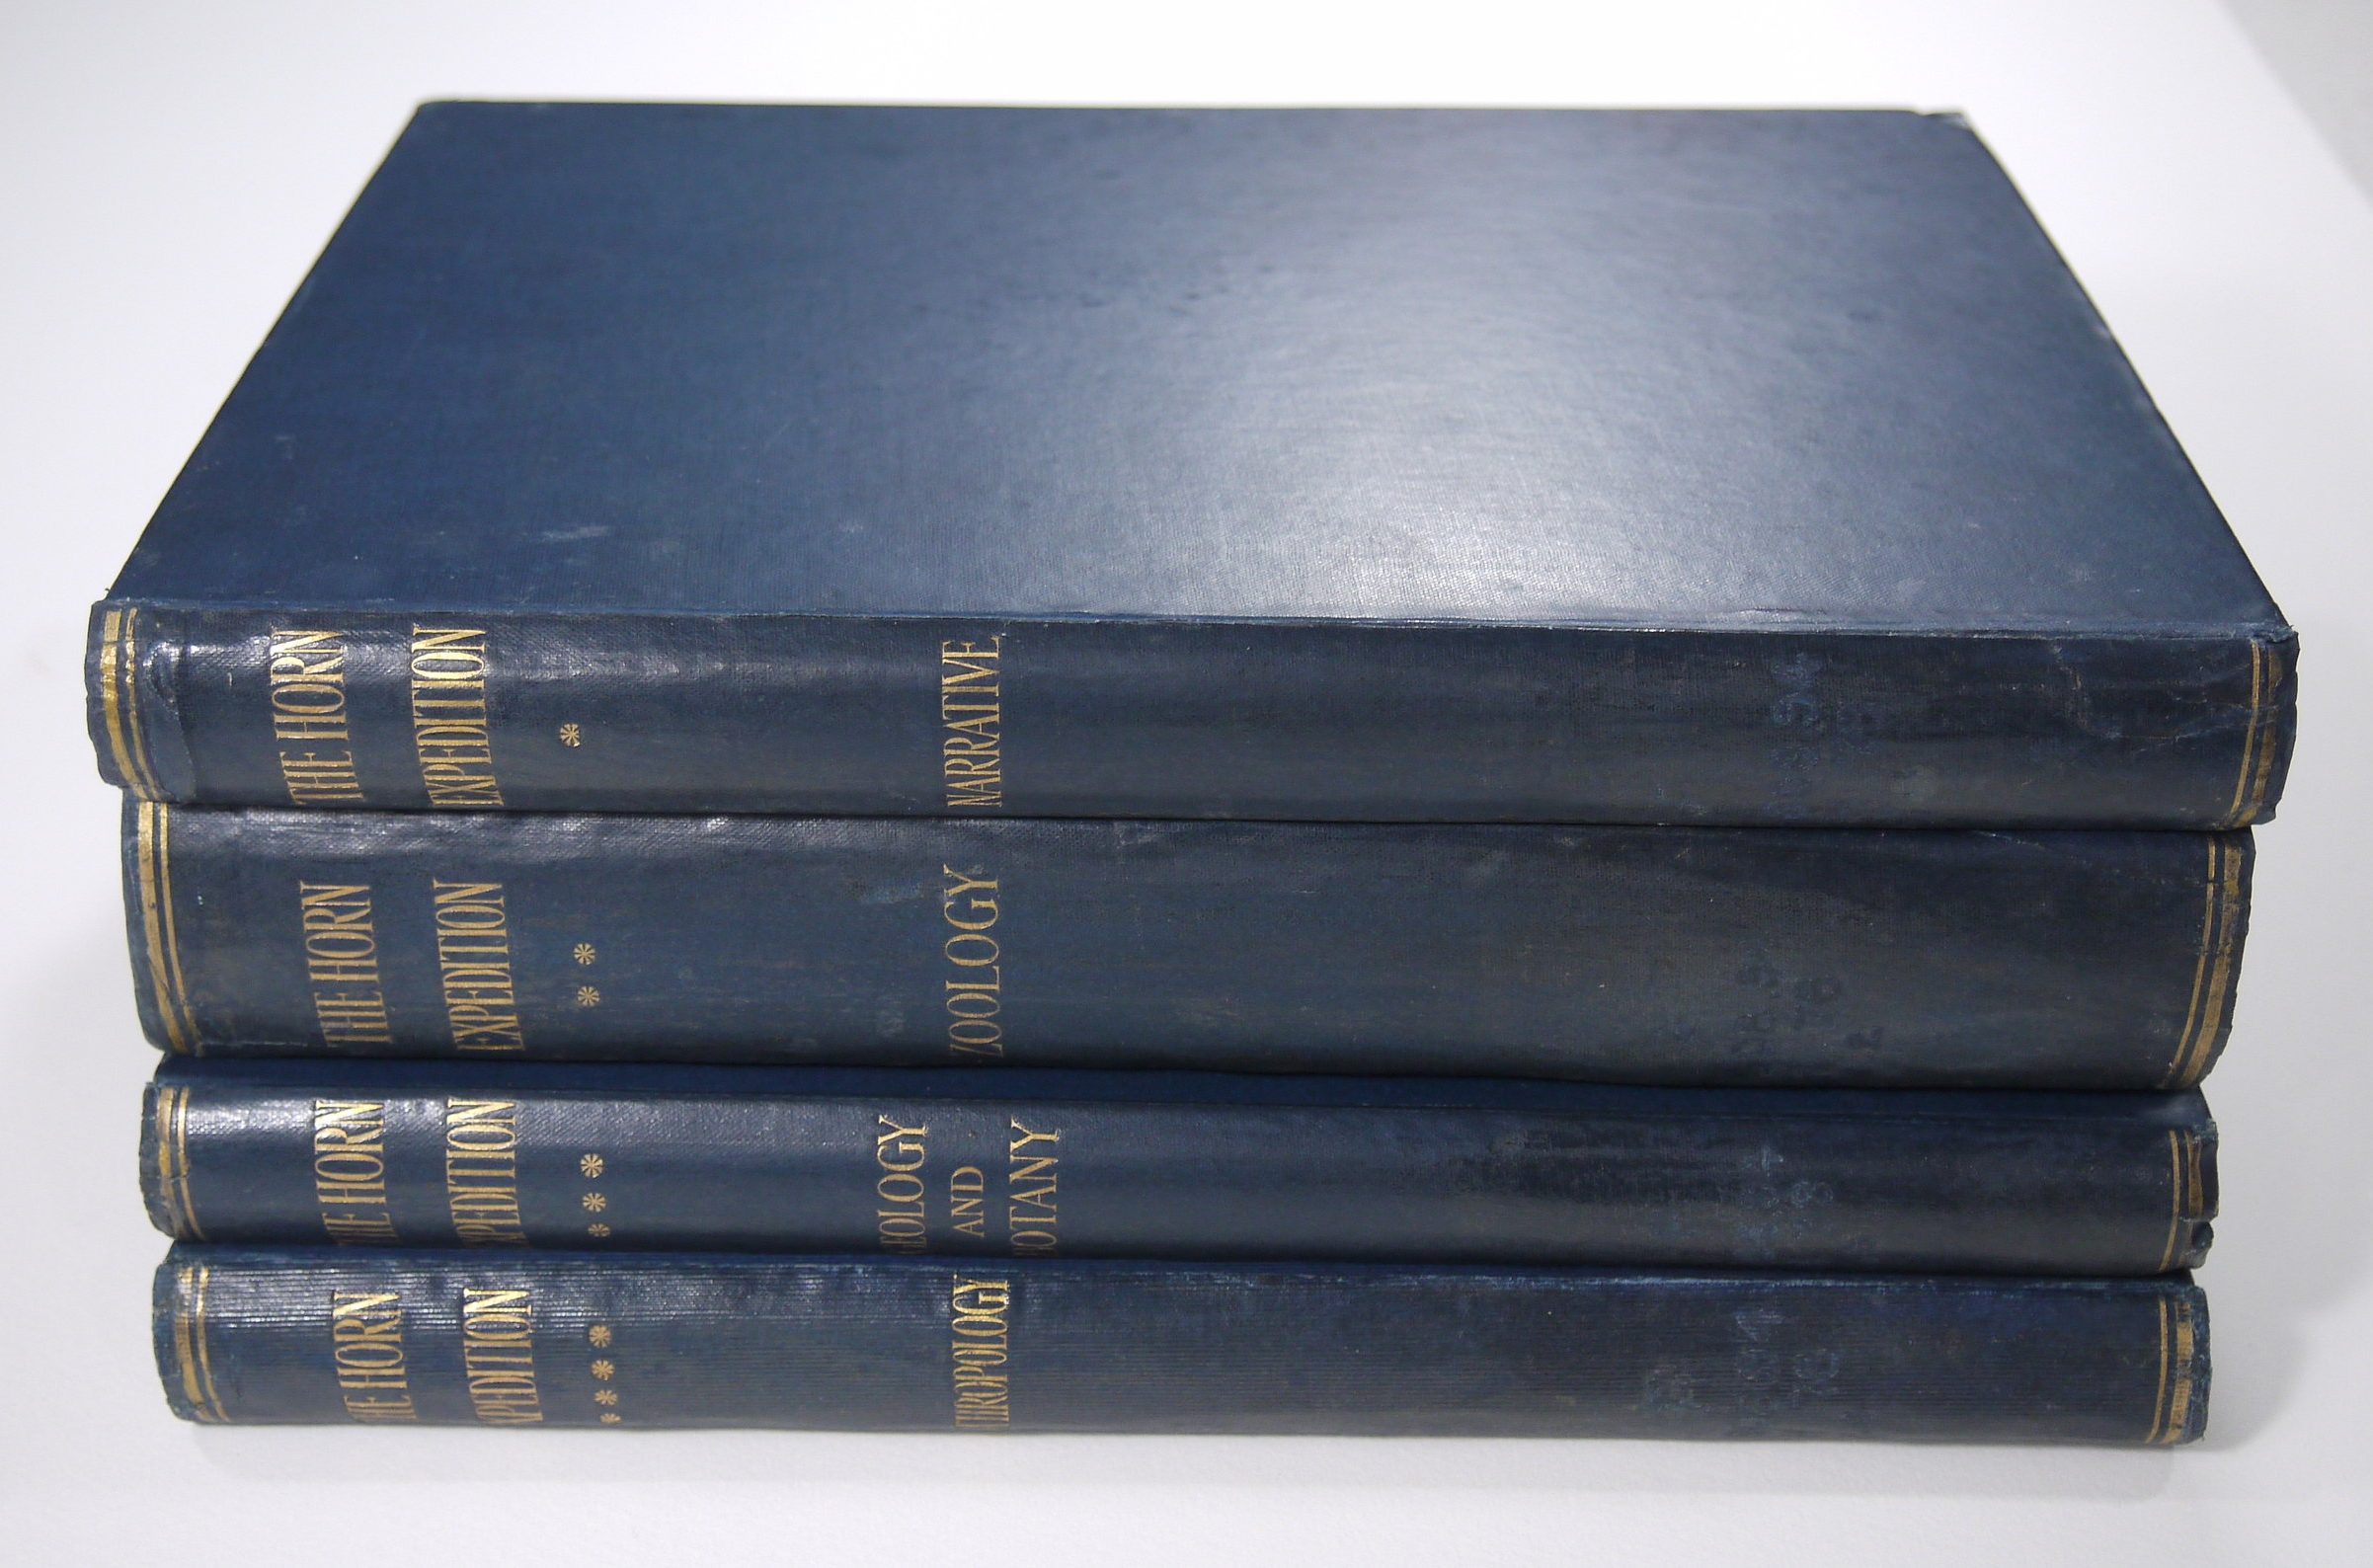 The four volumes after conservation treatment.